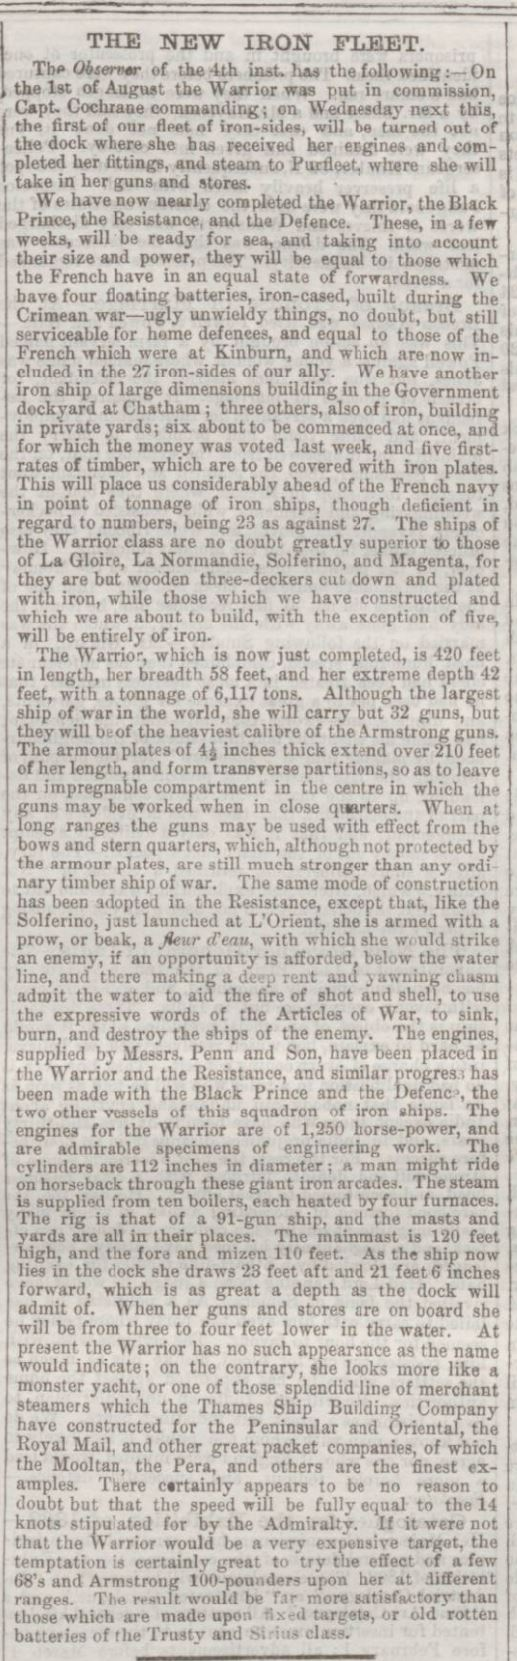 1861.08.10 hms warrior calls in at purfleet to collect guns and stores, kentish chronicle